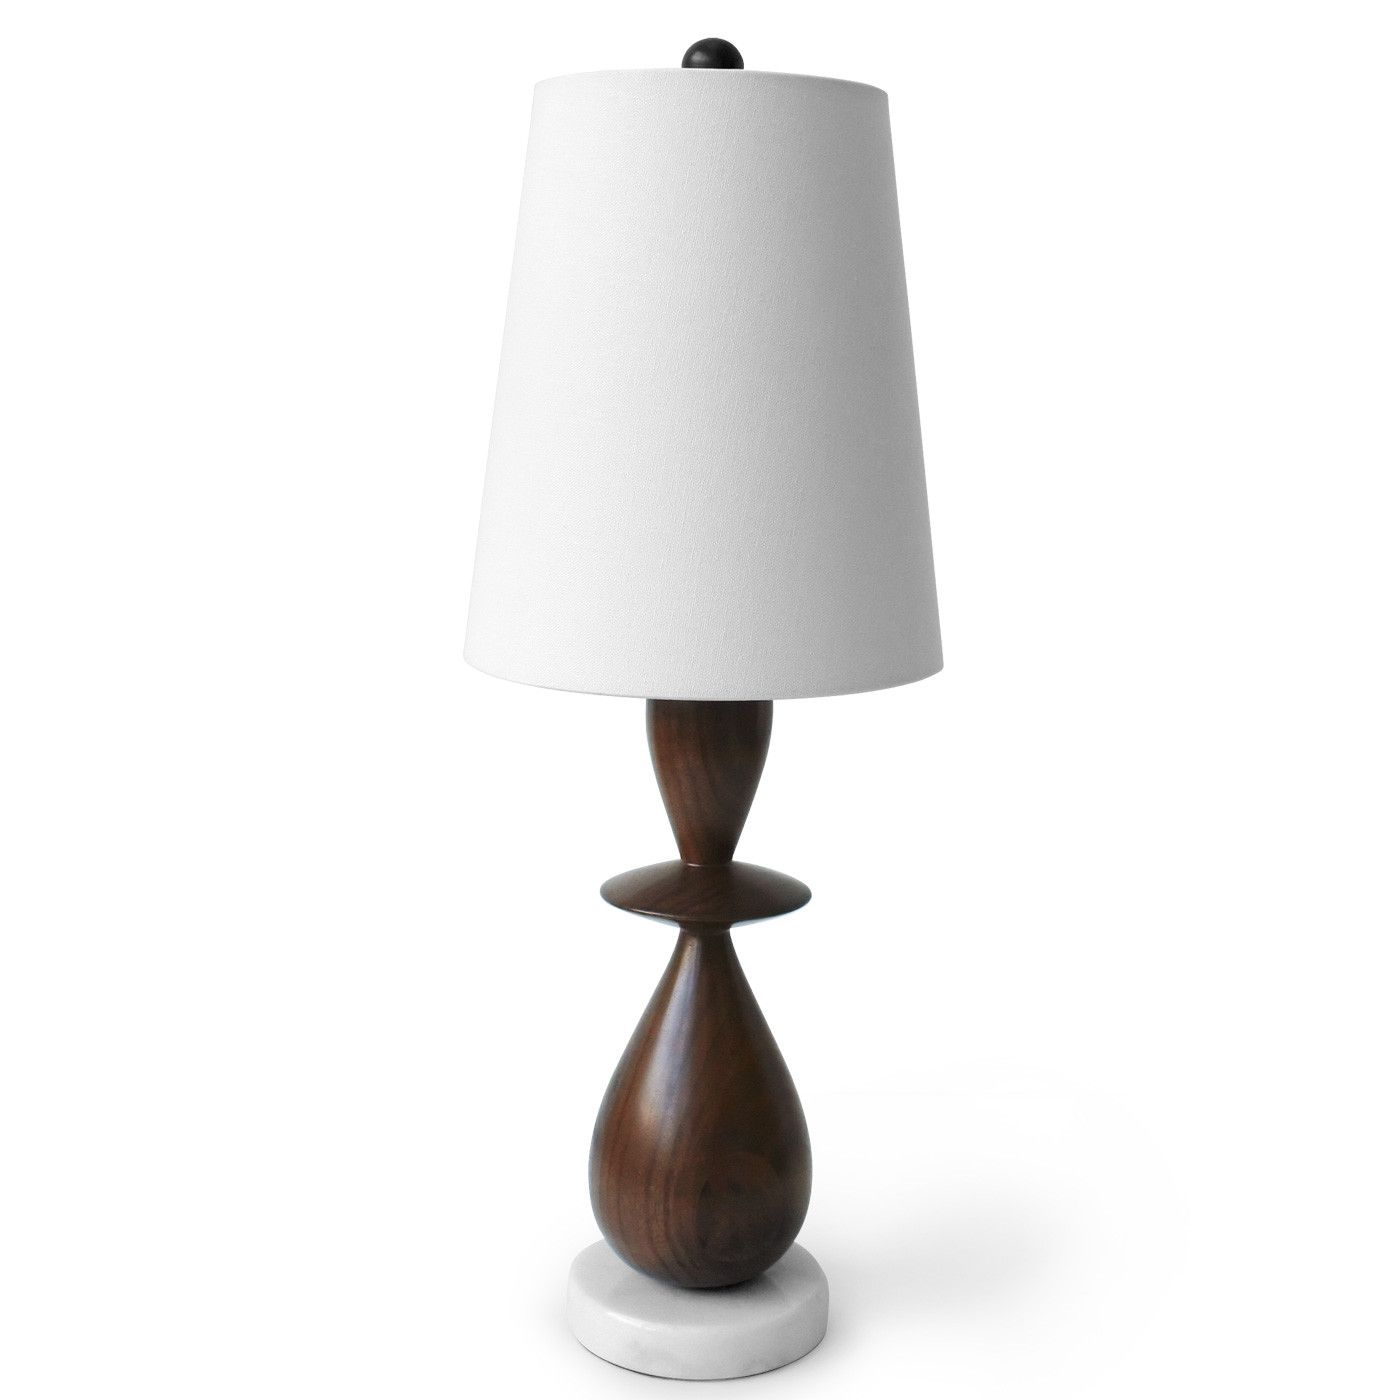 Jonathan Adler Buenos Aires 24 H Table Lamp With Empire Shade